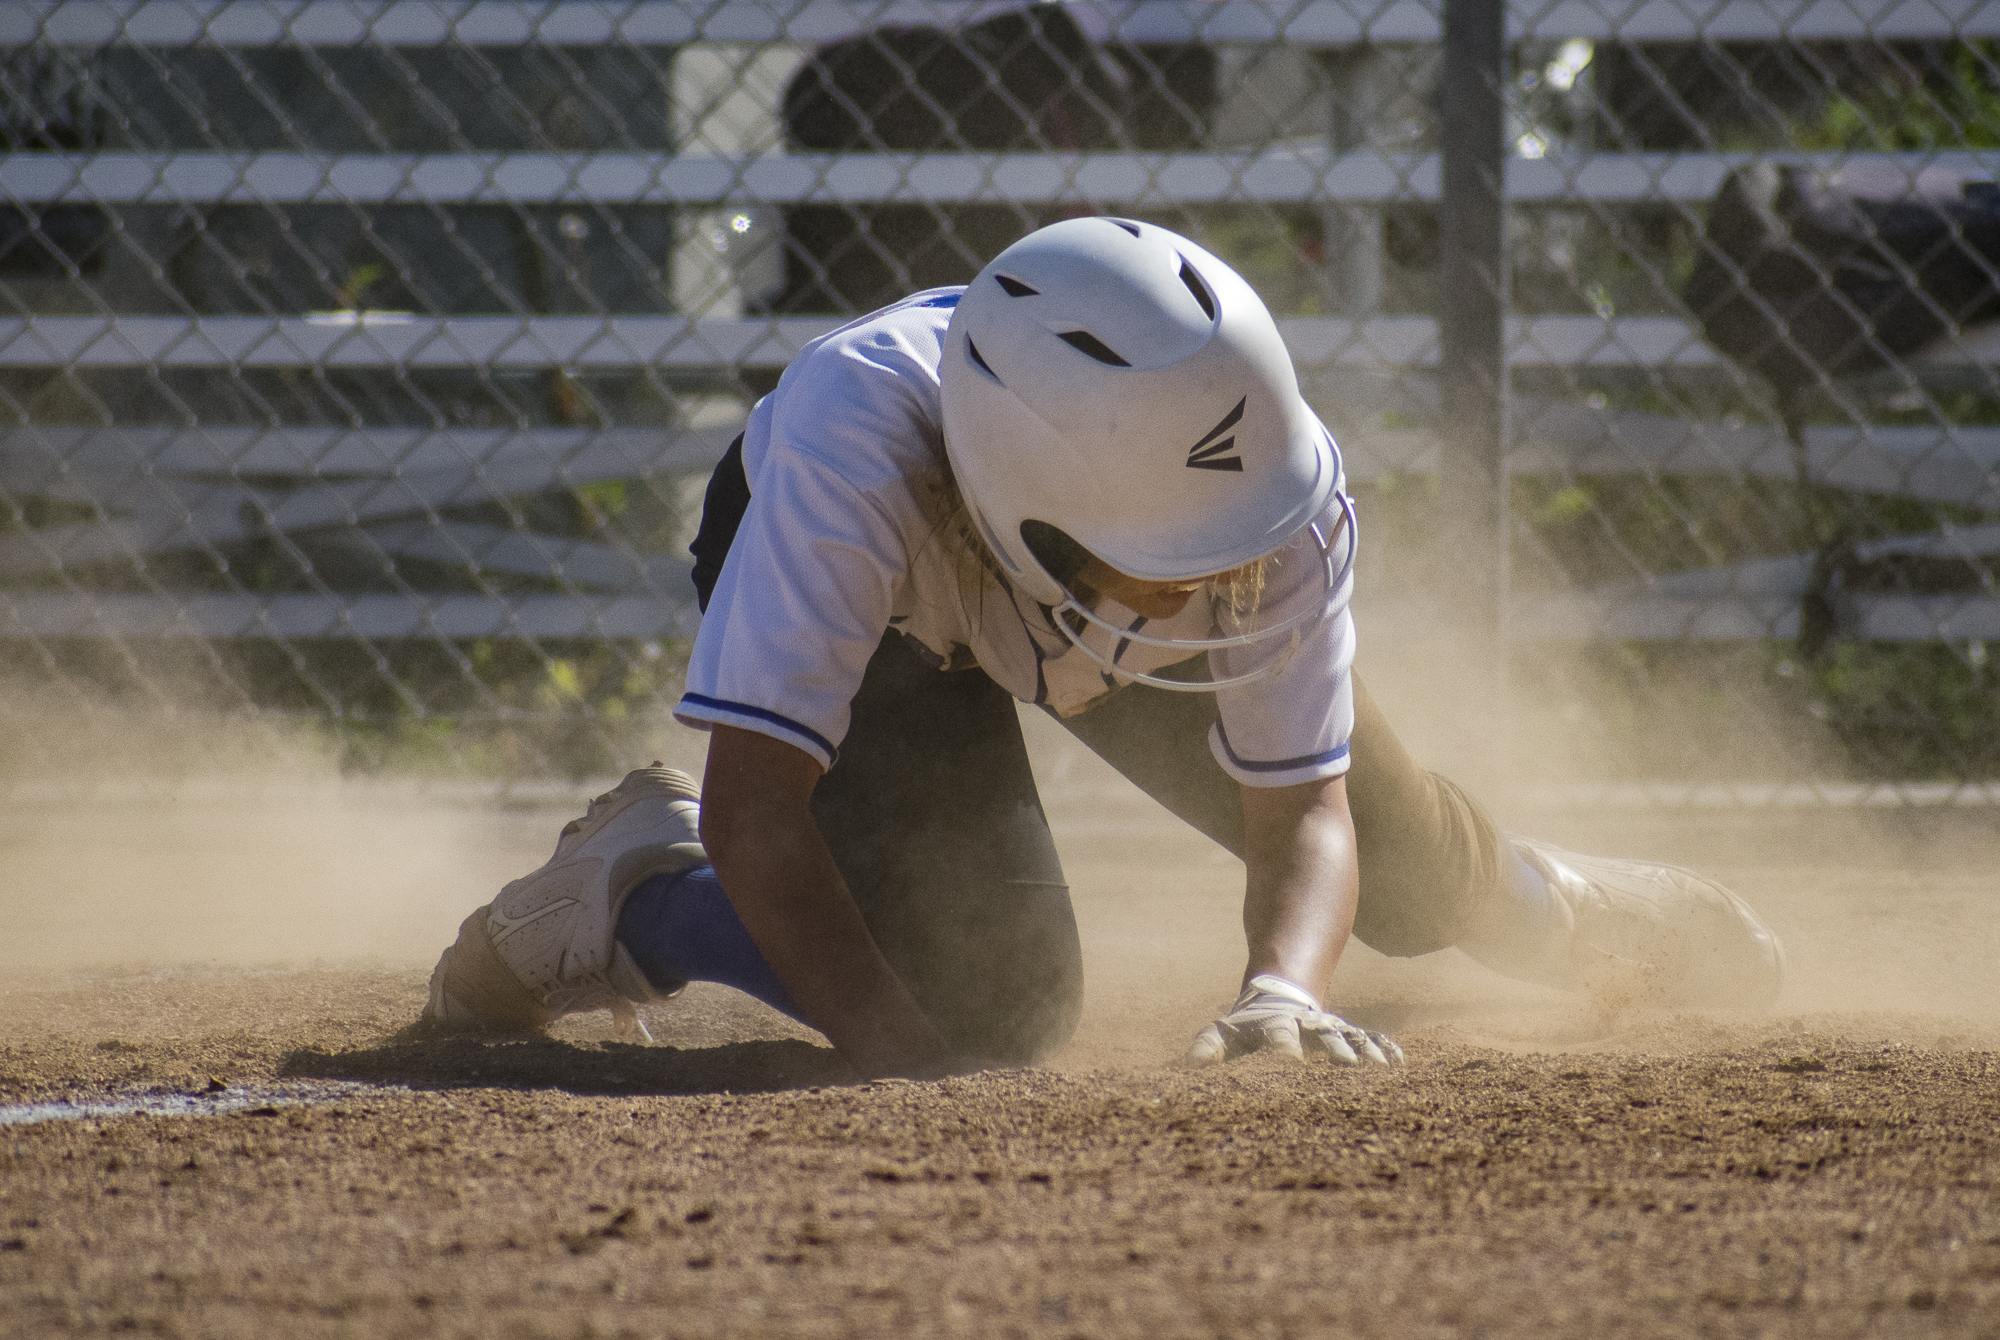 Santa Monica Corsairs Taylor Liebesman (#23) fails to finish a run despite sliding during a softball game against the Moorpark College Raiders on Tuesday, April 10 at the John Adams Middle School Field in Santa Monica, California. The game ended with an 11-8 loss for the Corsairs, further continuing their six-game loss. (Ethan Lauren/Corsair Photo)